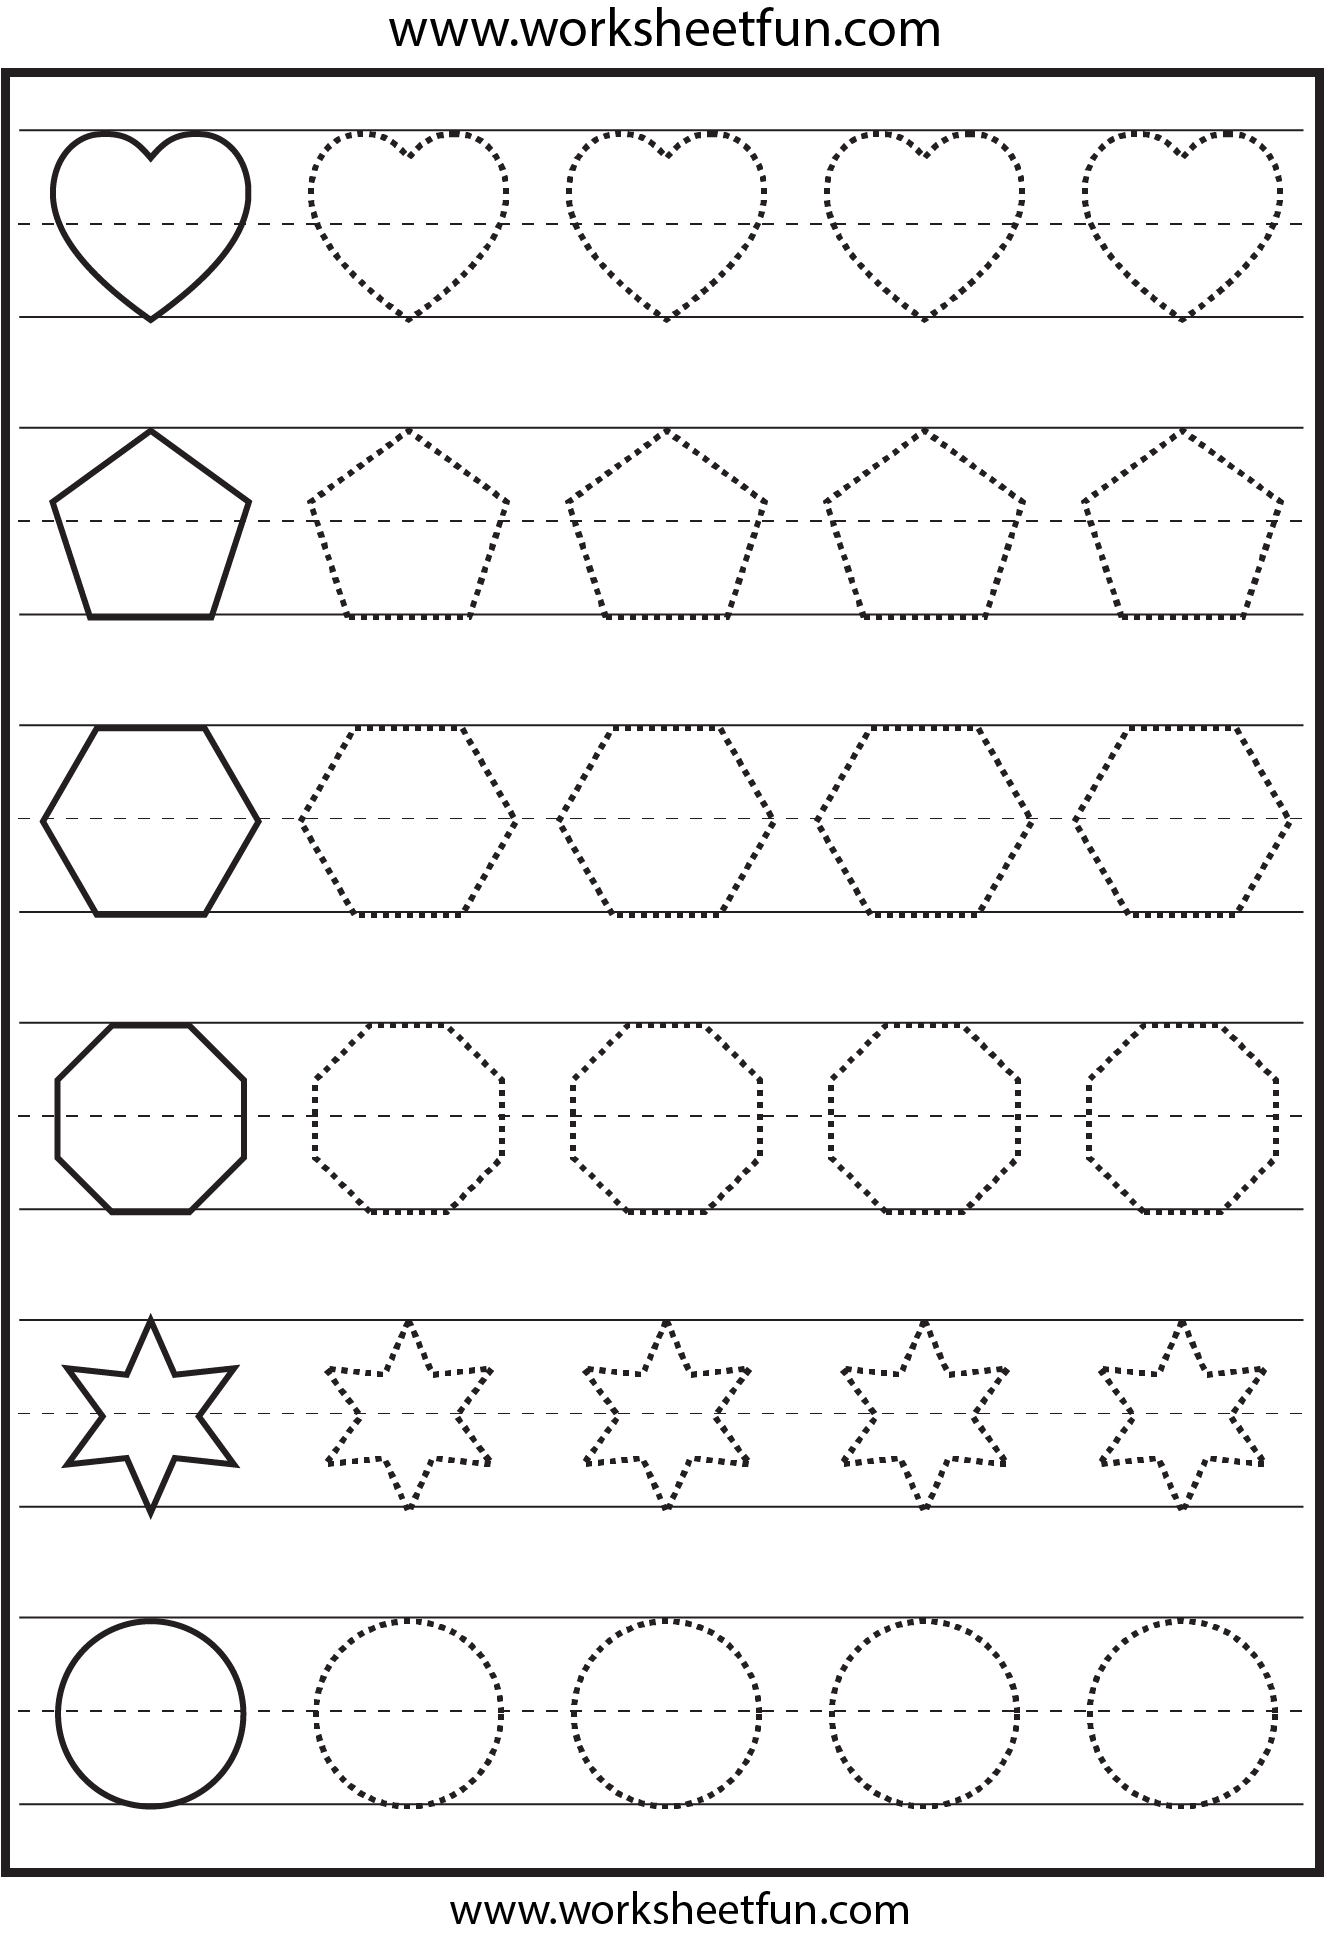 Printables Tracing Worksheets Cinecoa Thousands of Printable – Tracing Worksheet